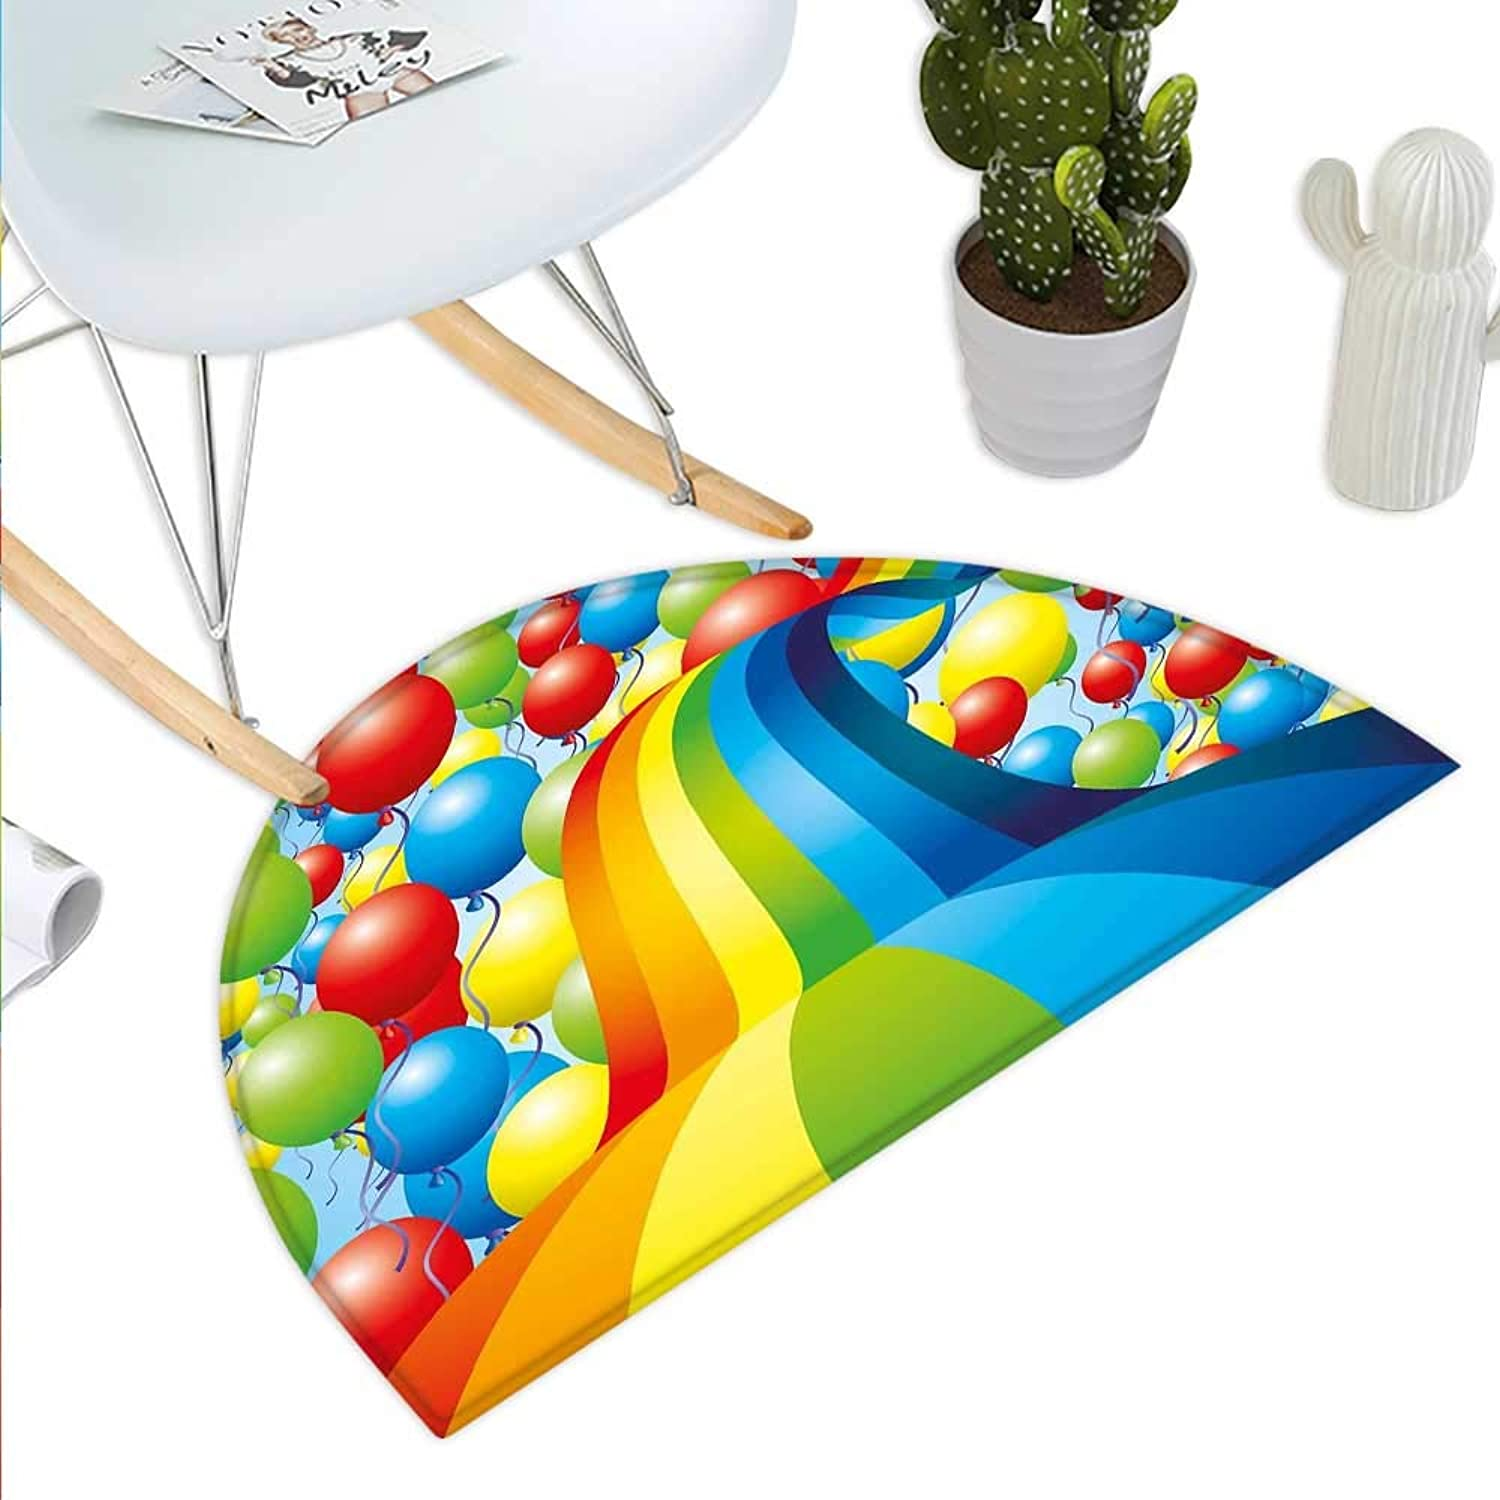 Birthday Semicircle Doormat Many Vibrant Balloons Wavy Rainbow Ribbons Festive Celebration Mood Special Event Halfmoon doormats H 43.3  xD 64.9  Multicolor